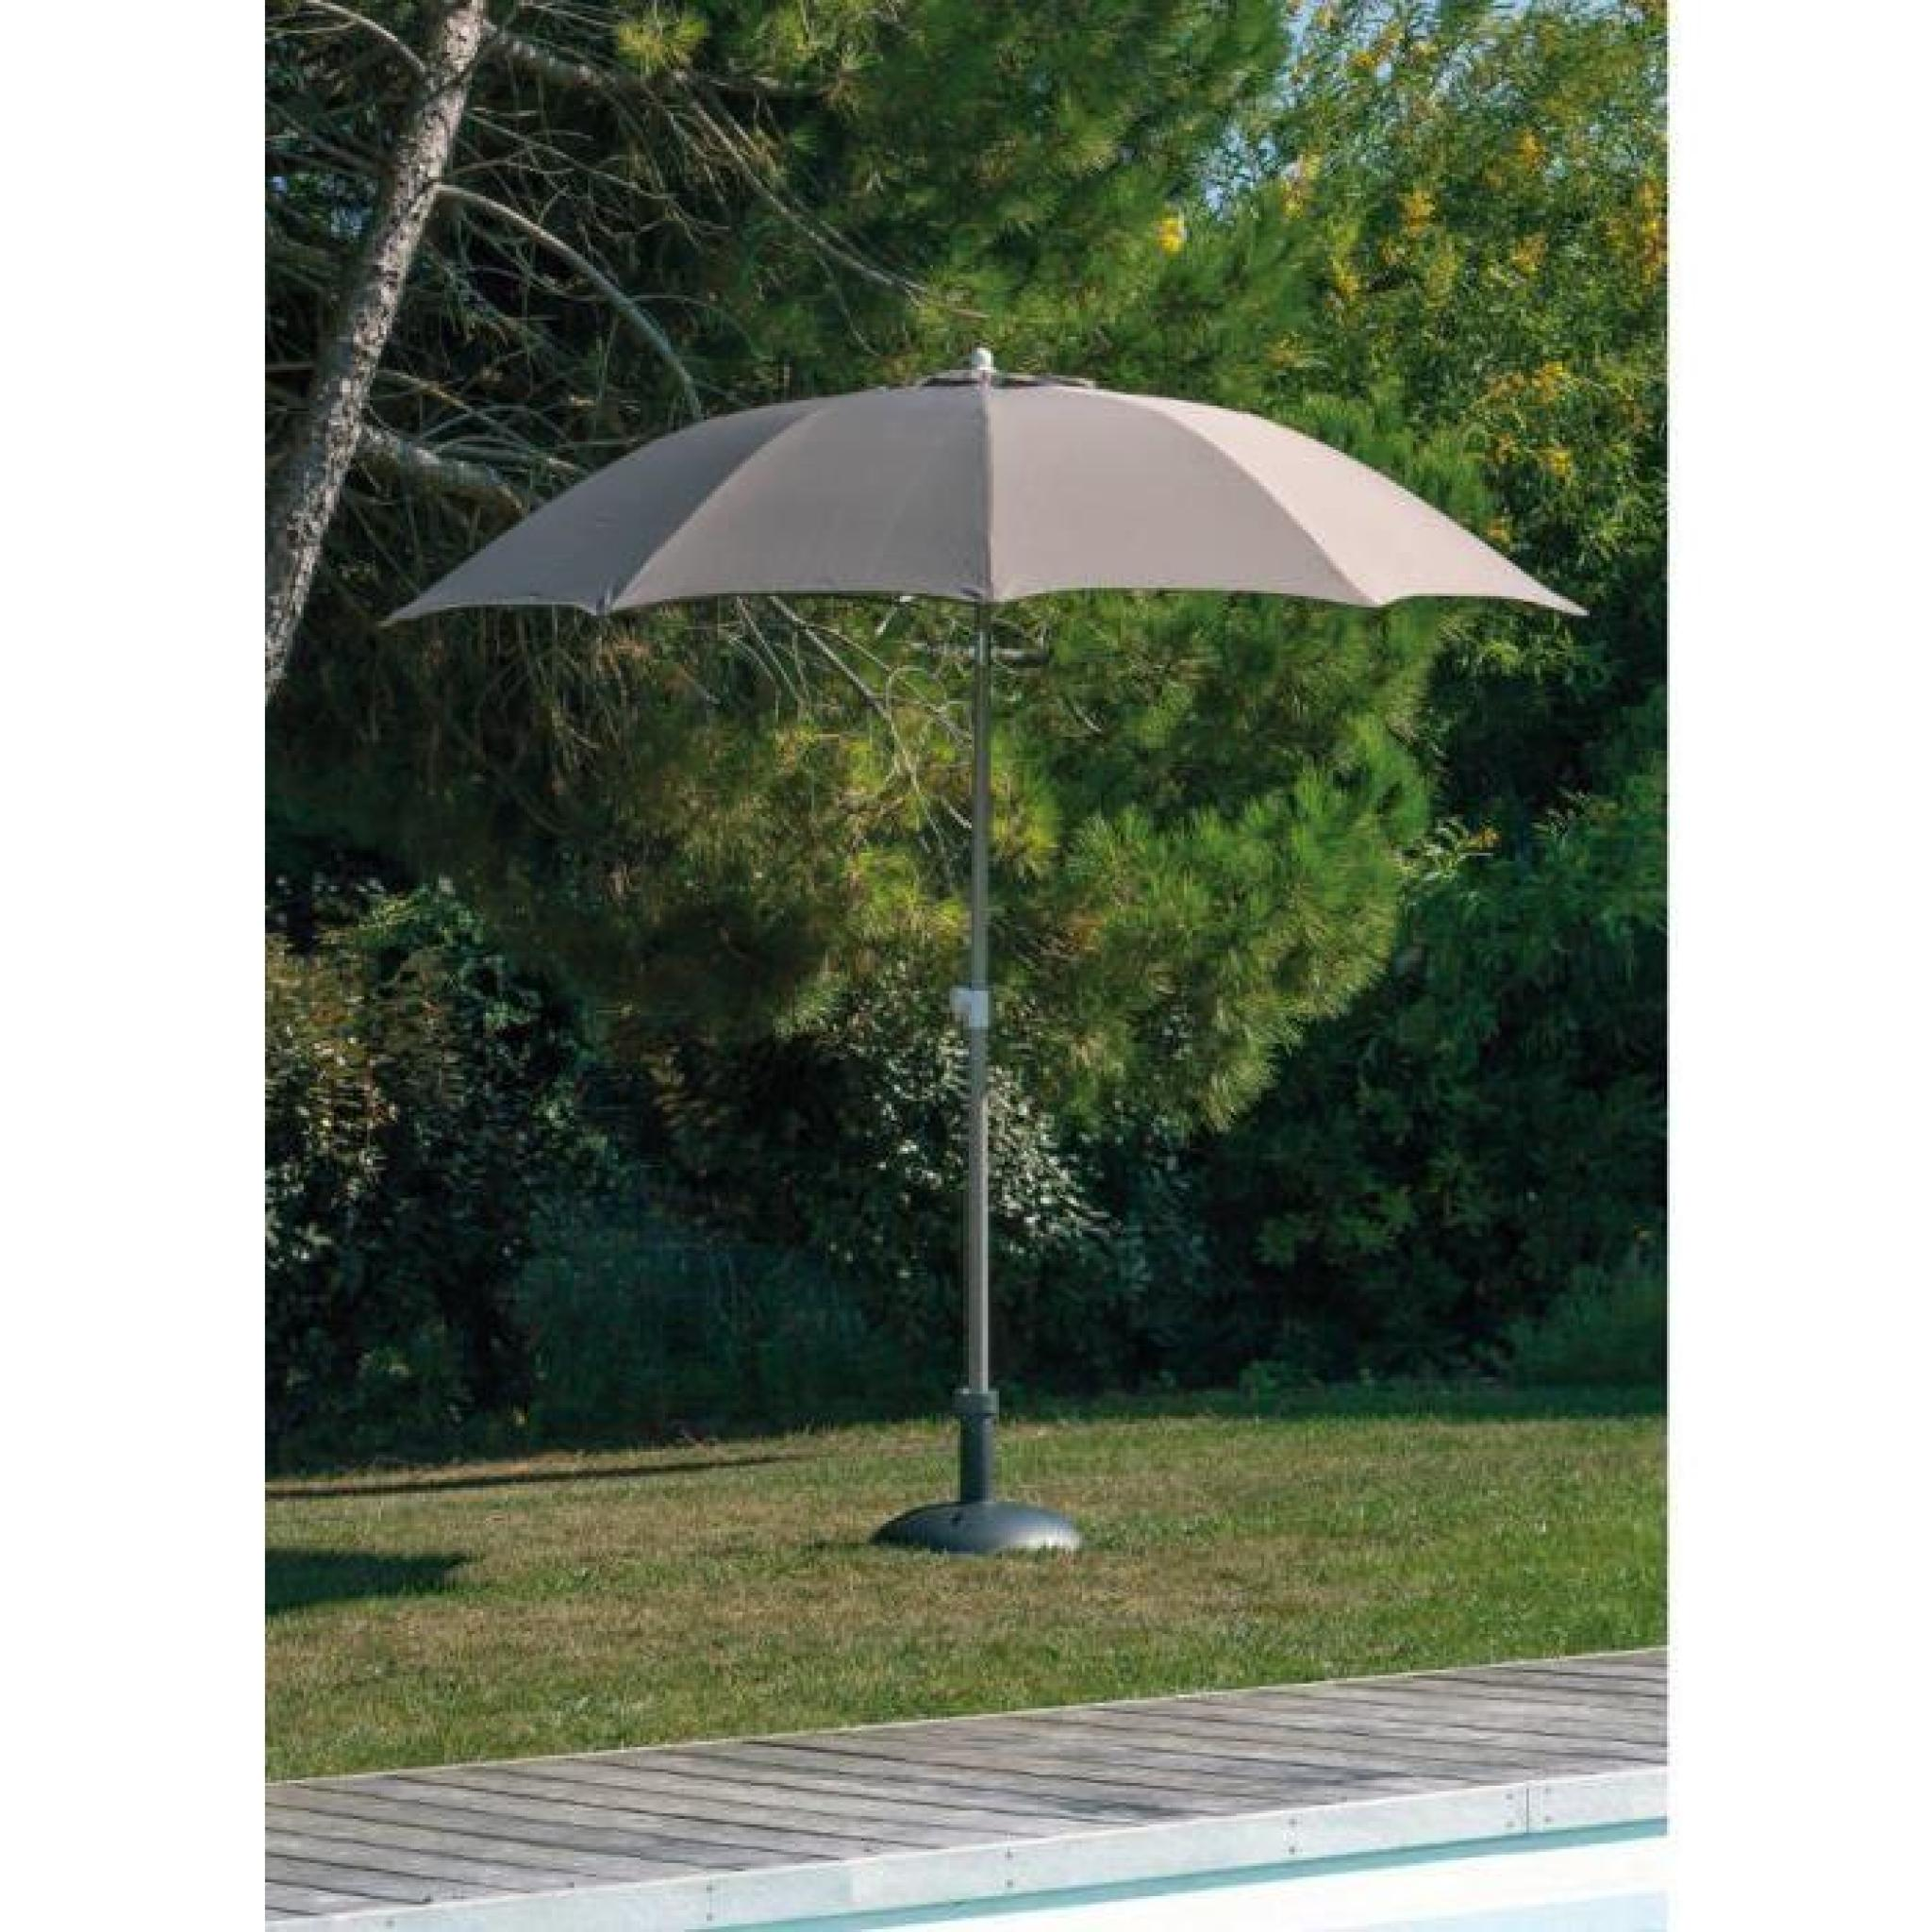 parasol-rond-inclinable-aluminium-2-70m-4 Meilleur De De Parasol Inclinable Pas Cher